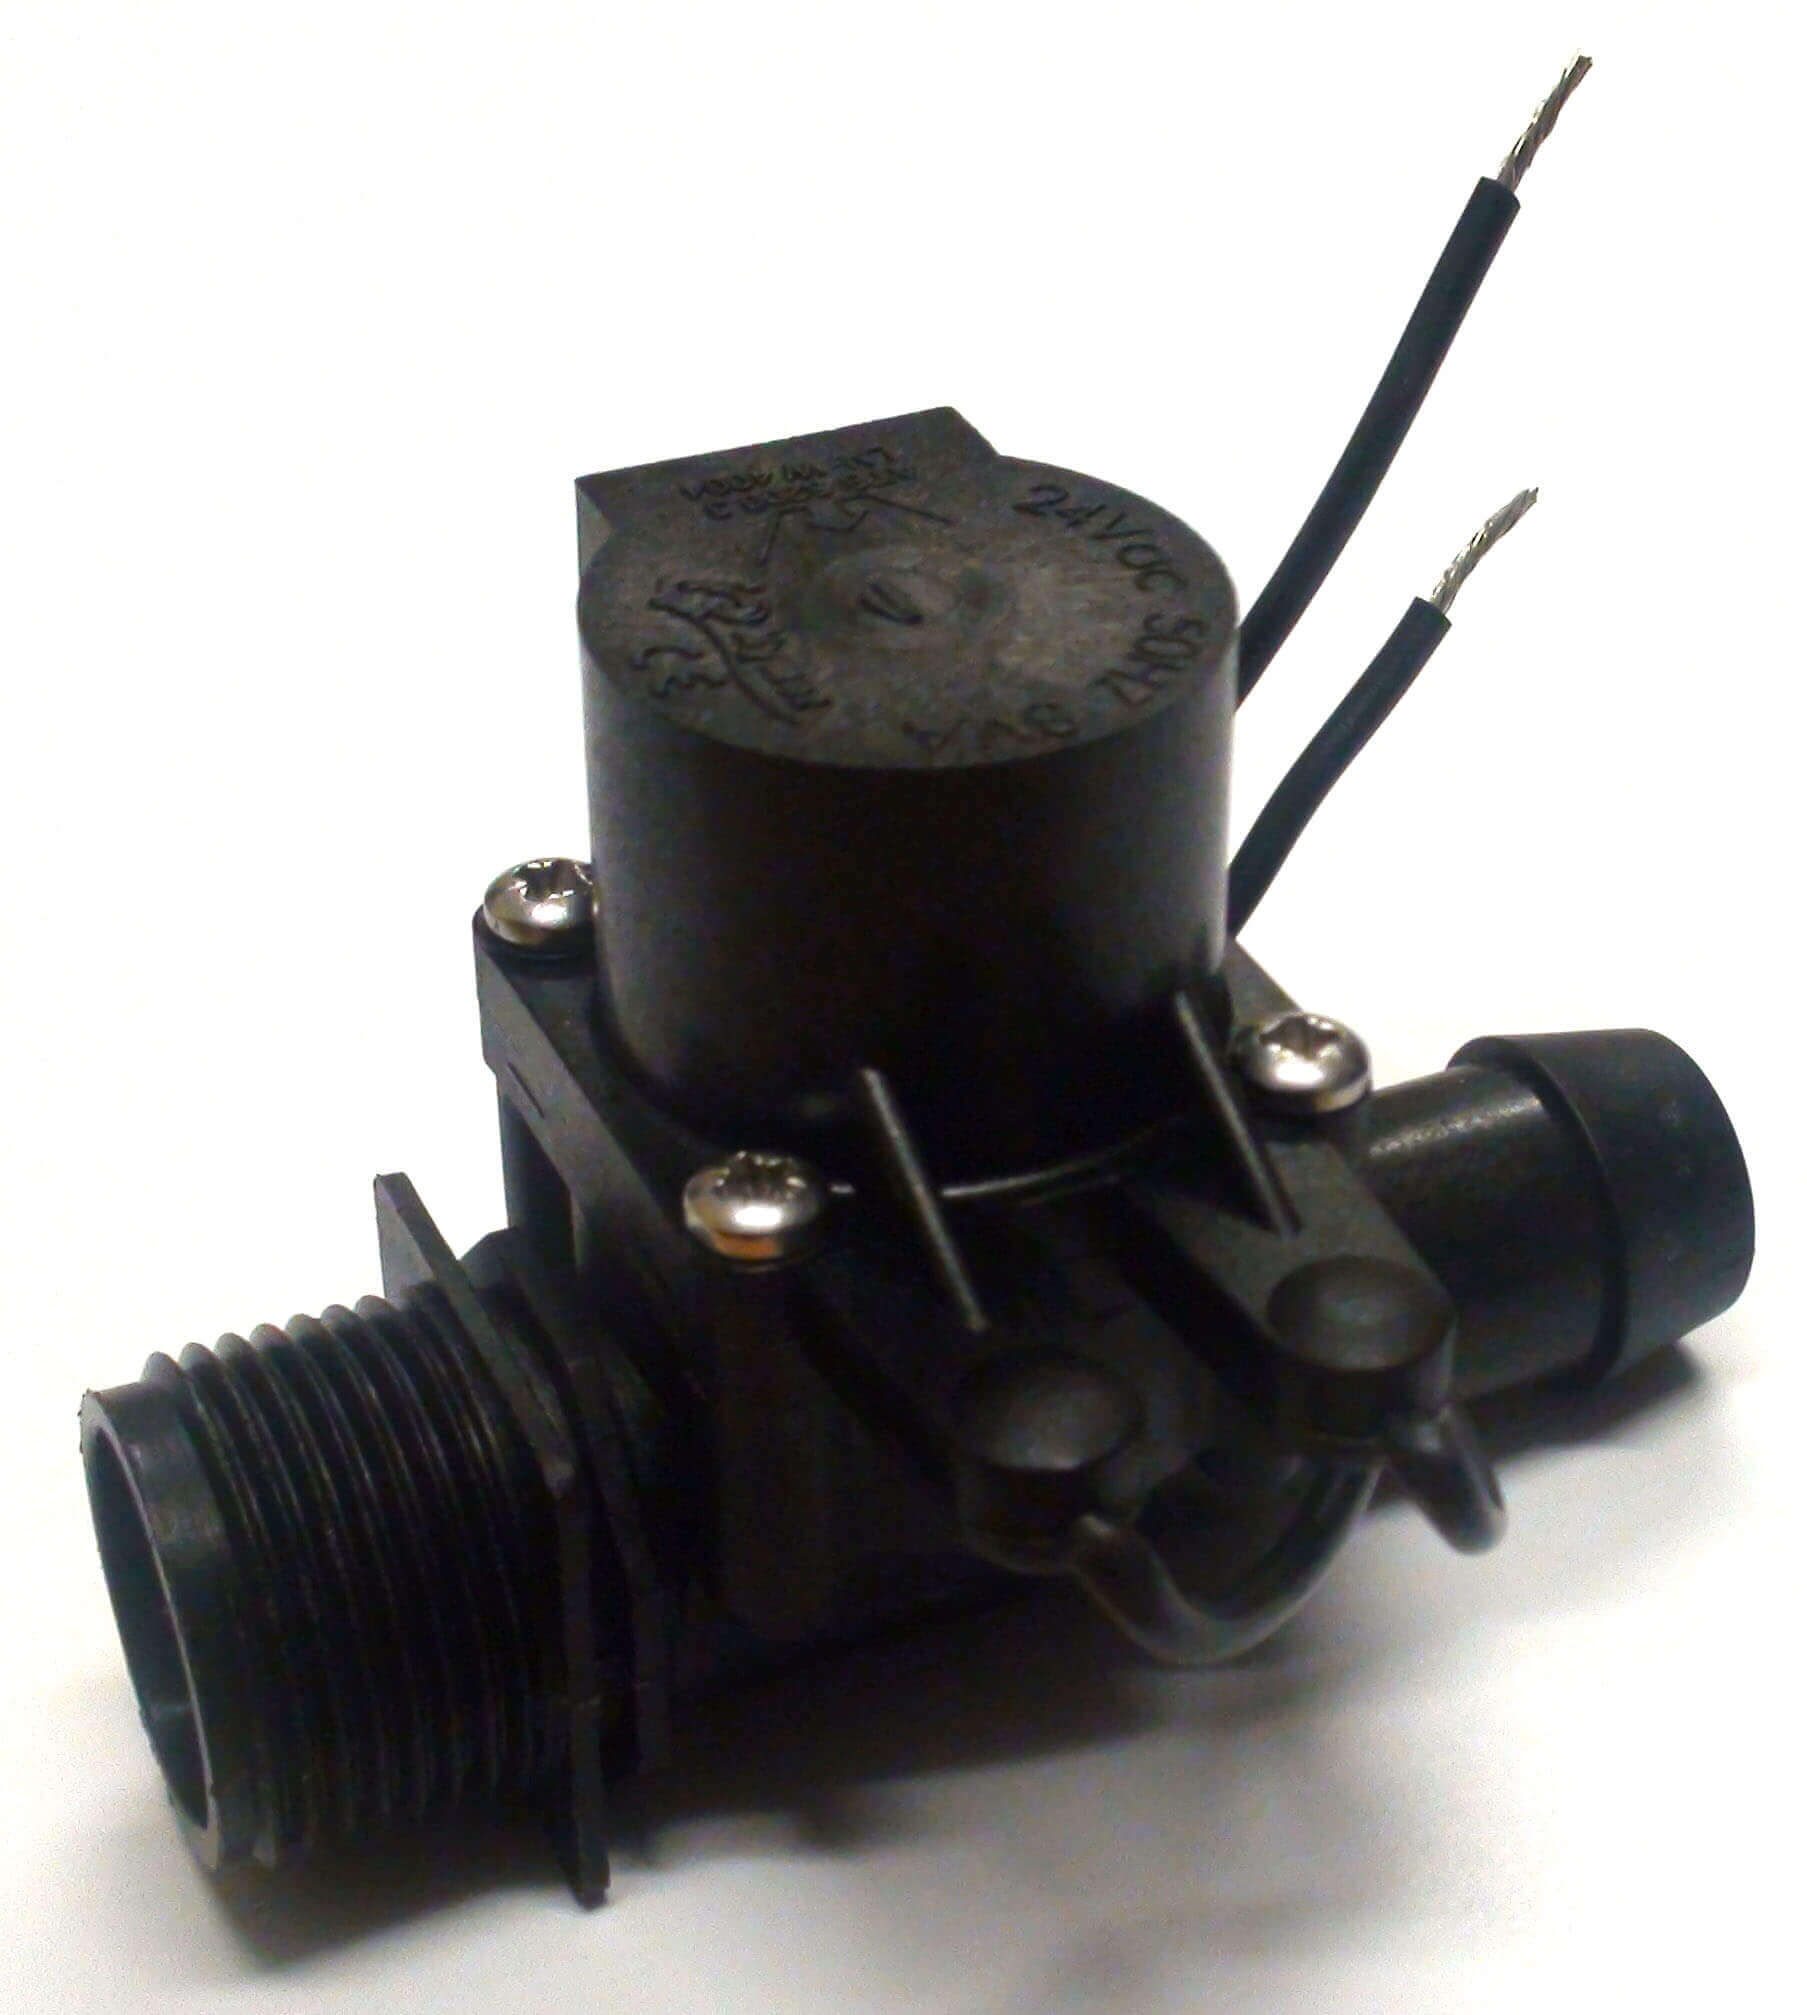 """Micro Irrigation Solenoid Valve 24VAC - 3/4"""" Male Inlet - 19mm Straight Barb Outlet - 20LPM"""